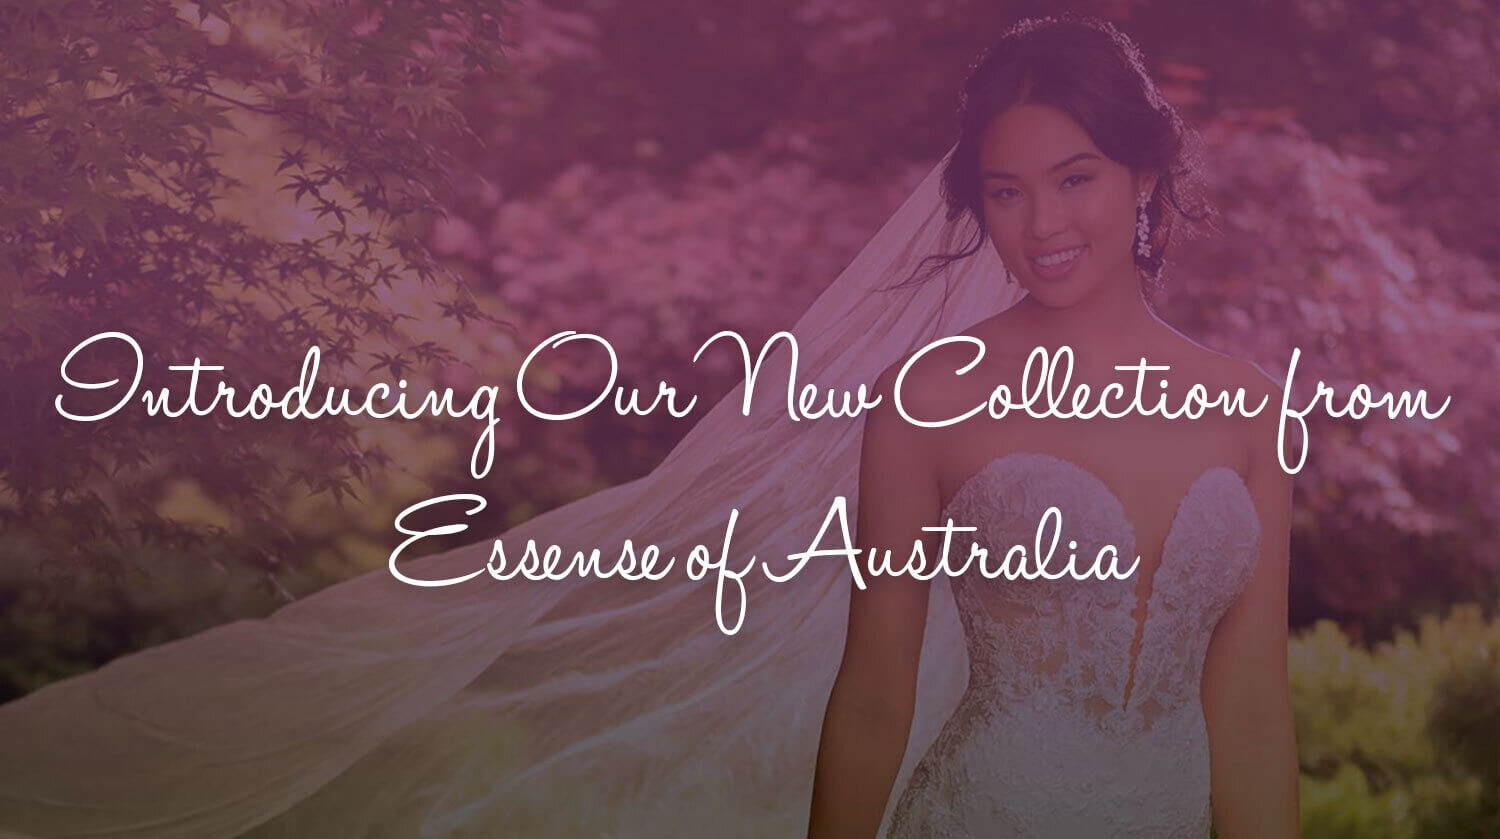 Introducing Our New Collection from Essense of Australia